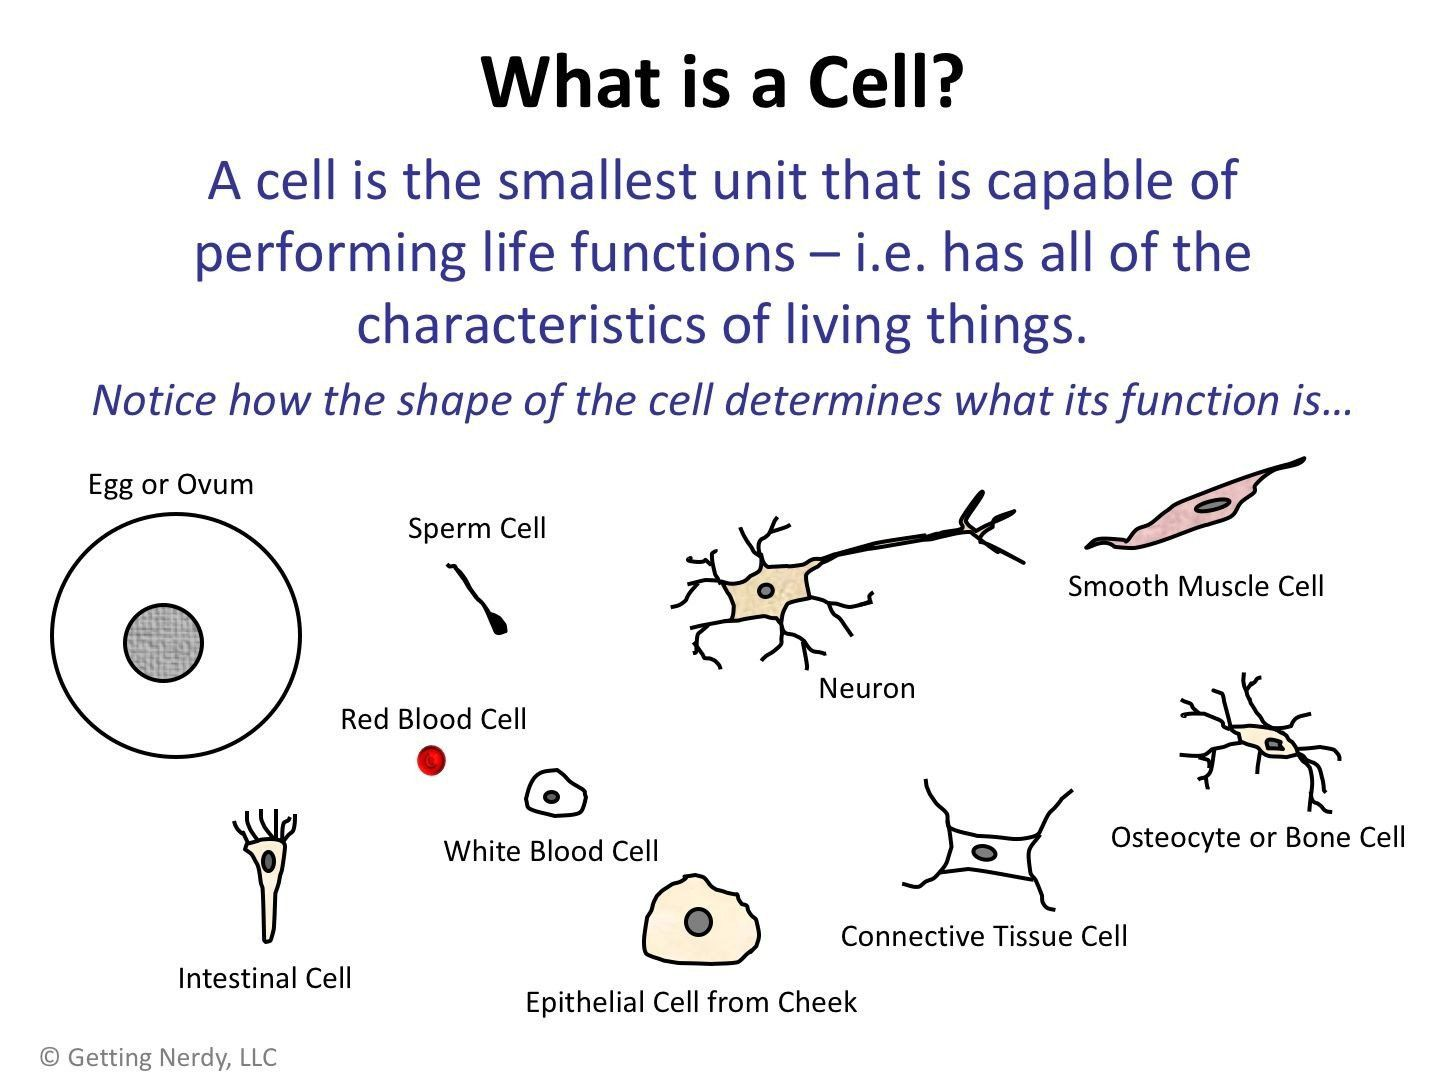 Cell Theory Worksheet 7th Grade Lesson Plan Robert Hooke S Contributions To Cells And The 2020